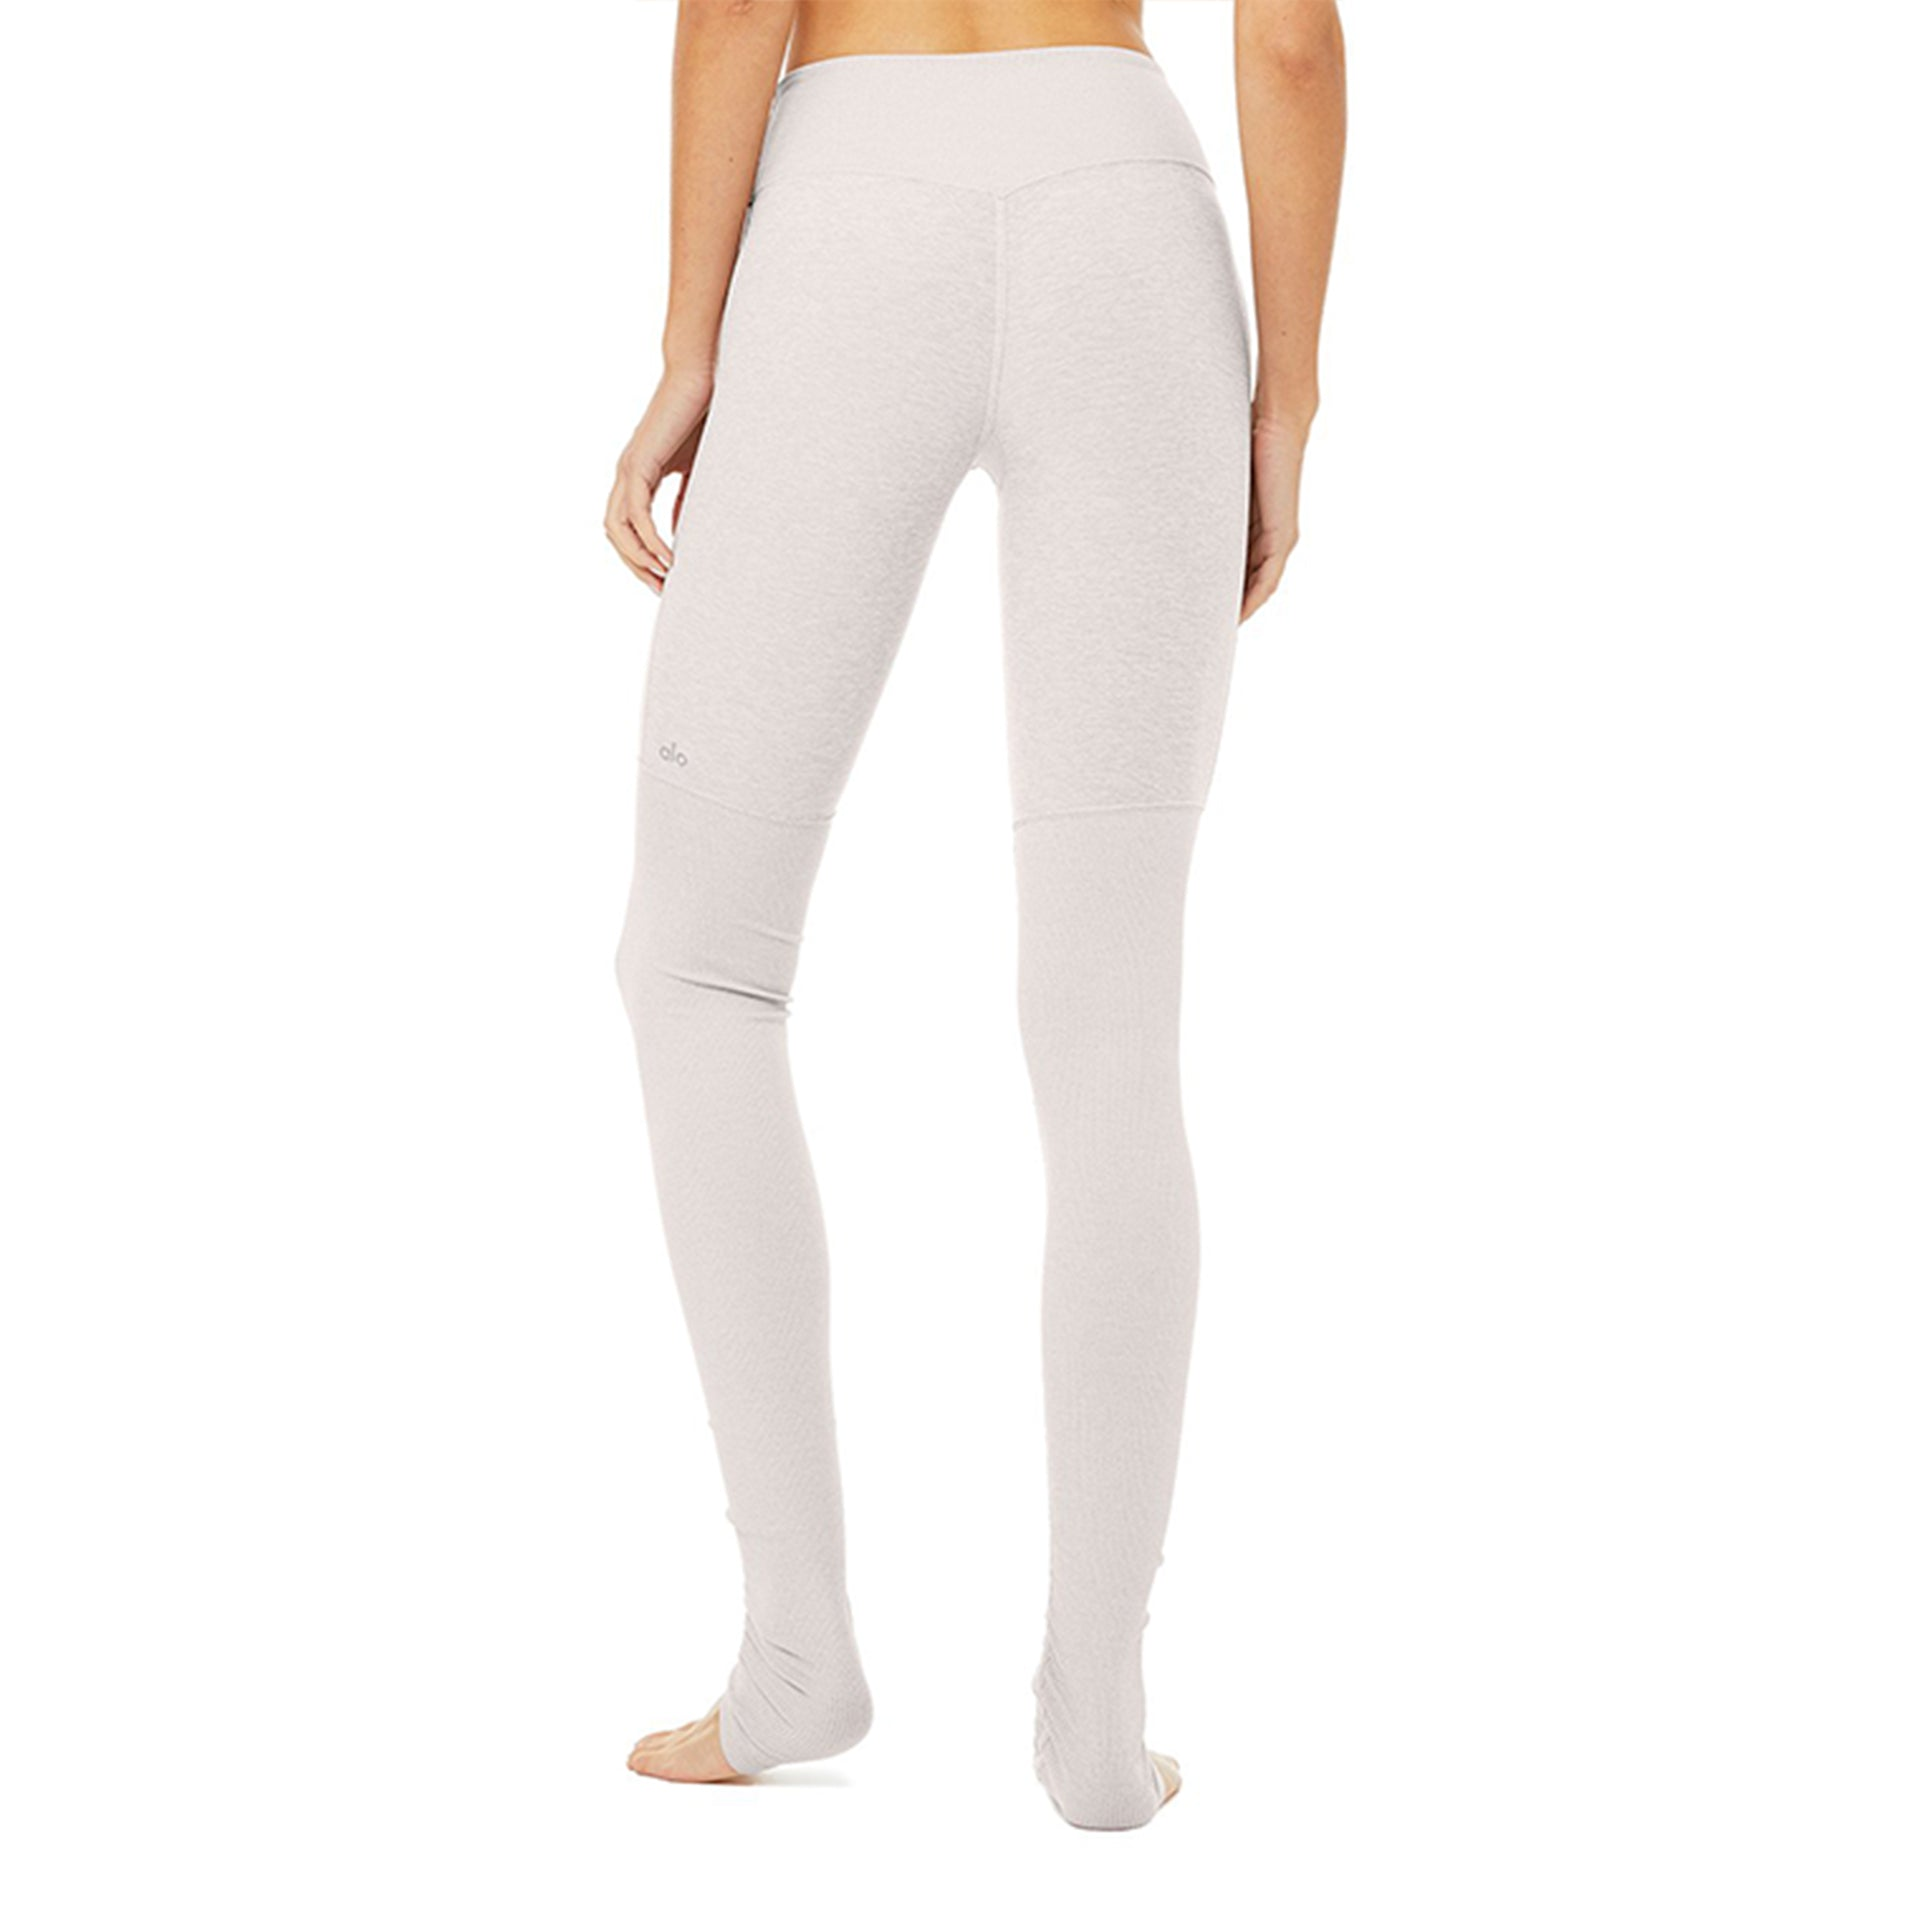 Alo Yoga High Waist ALOSOFT Goddess Leggings in Lavender TWO LEFT